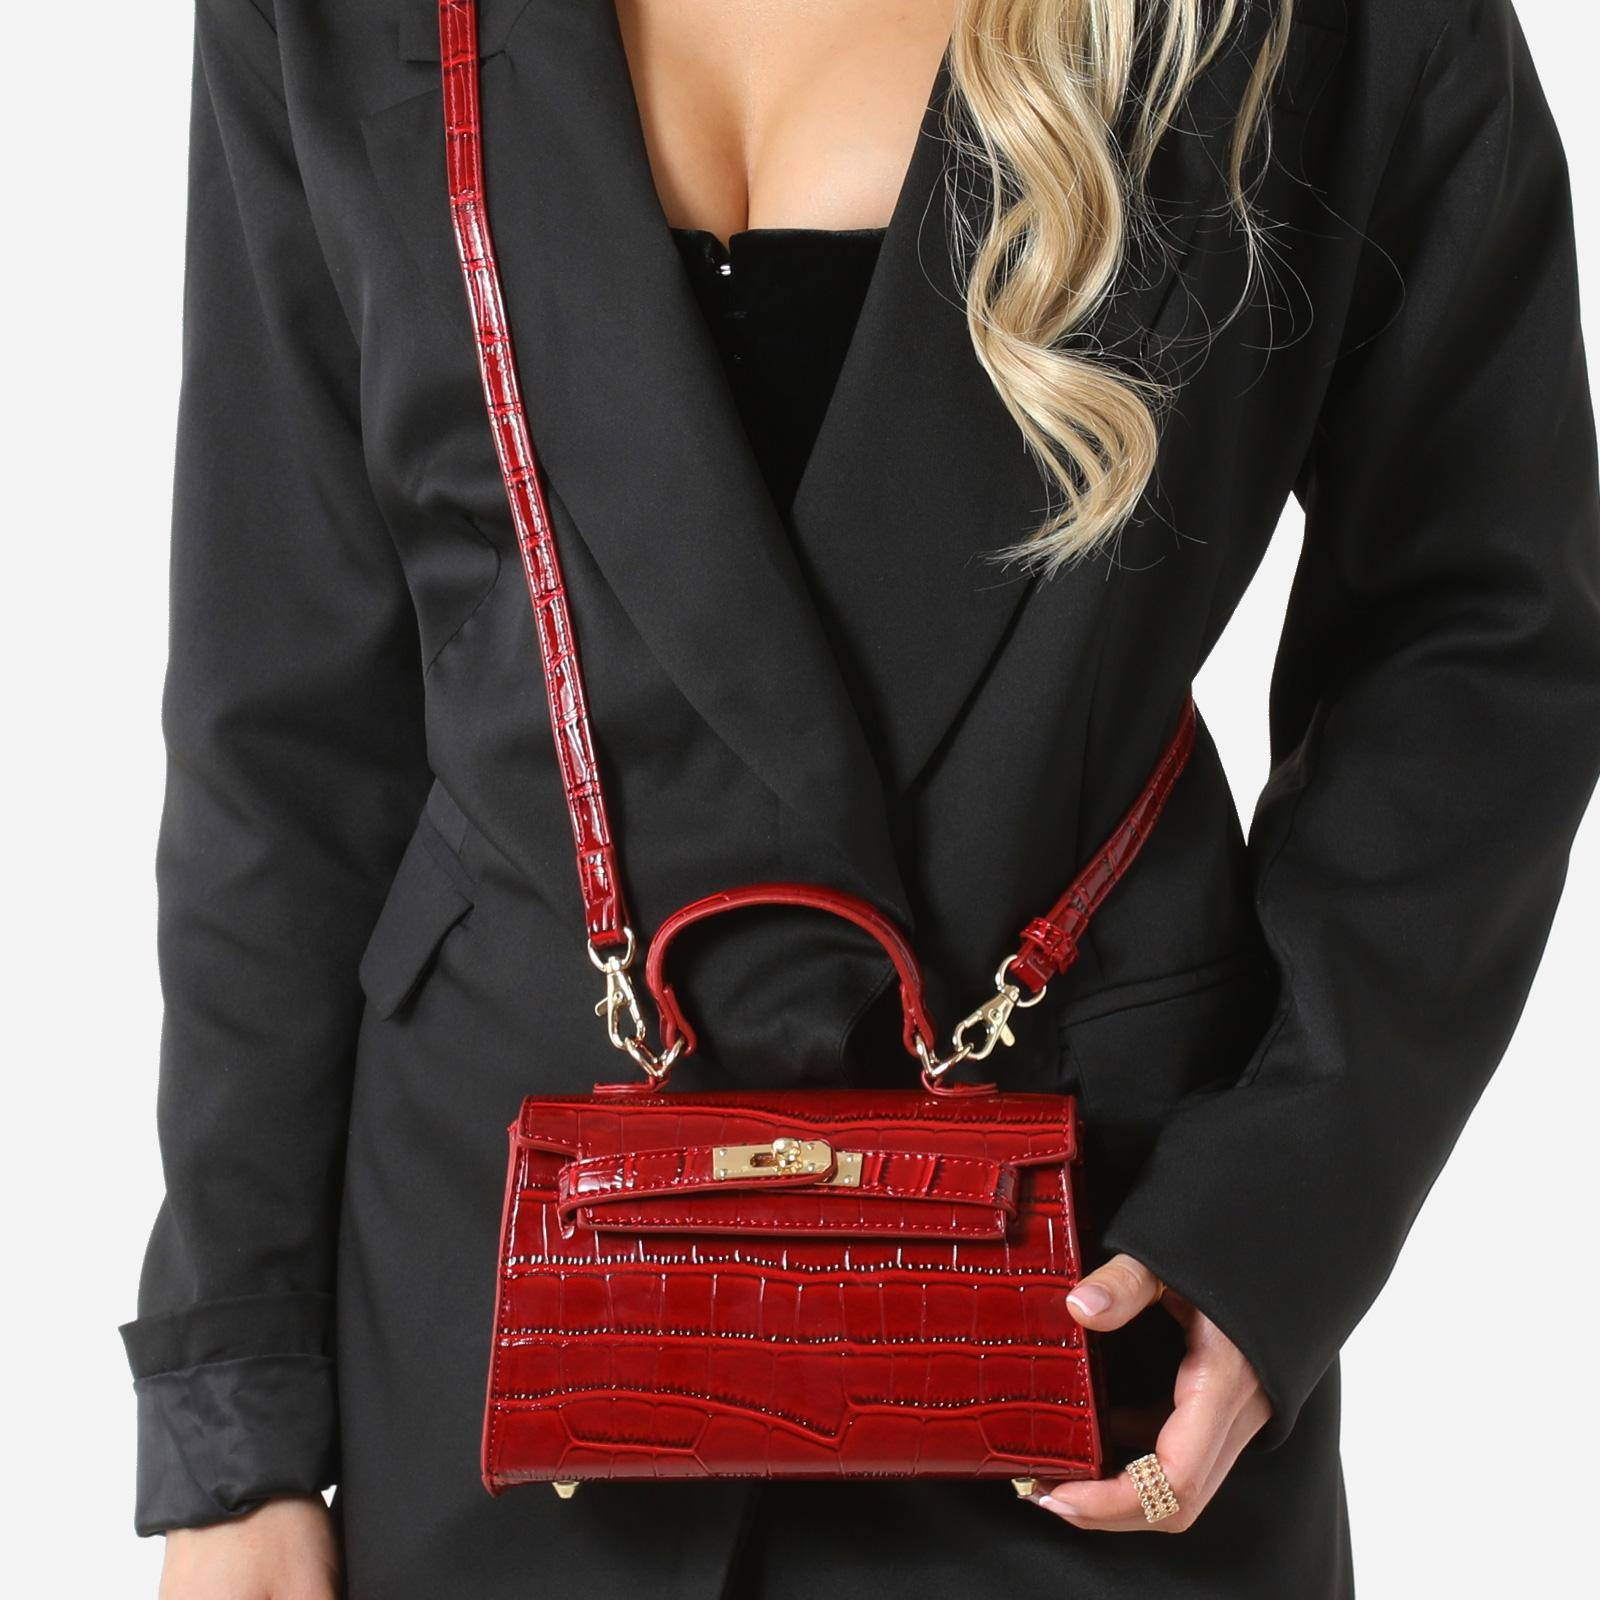 EGO Lock Detail Mini Tote Bag In Red Croc Print Patent,, Red  - female - Size: One Size